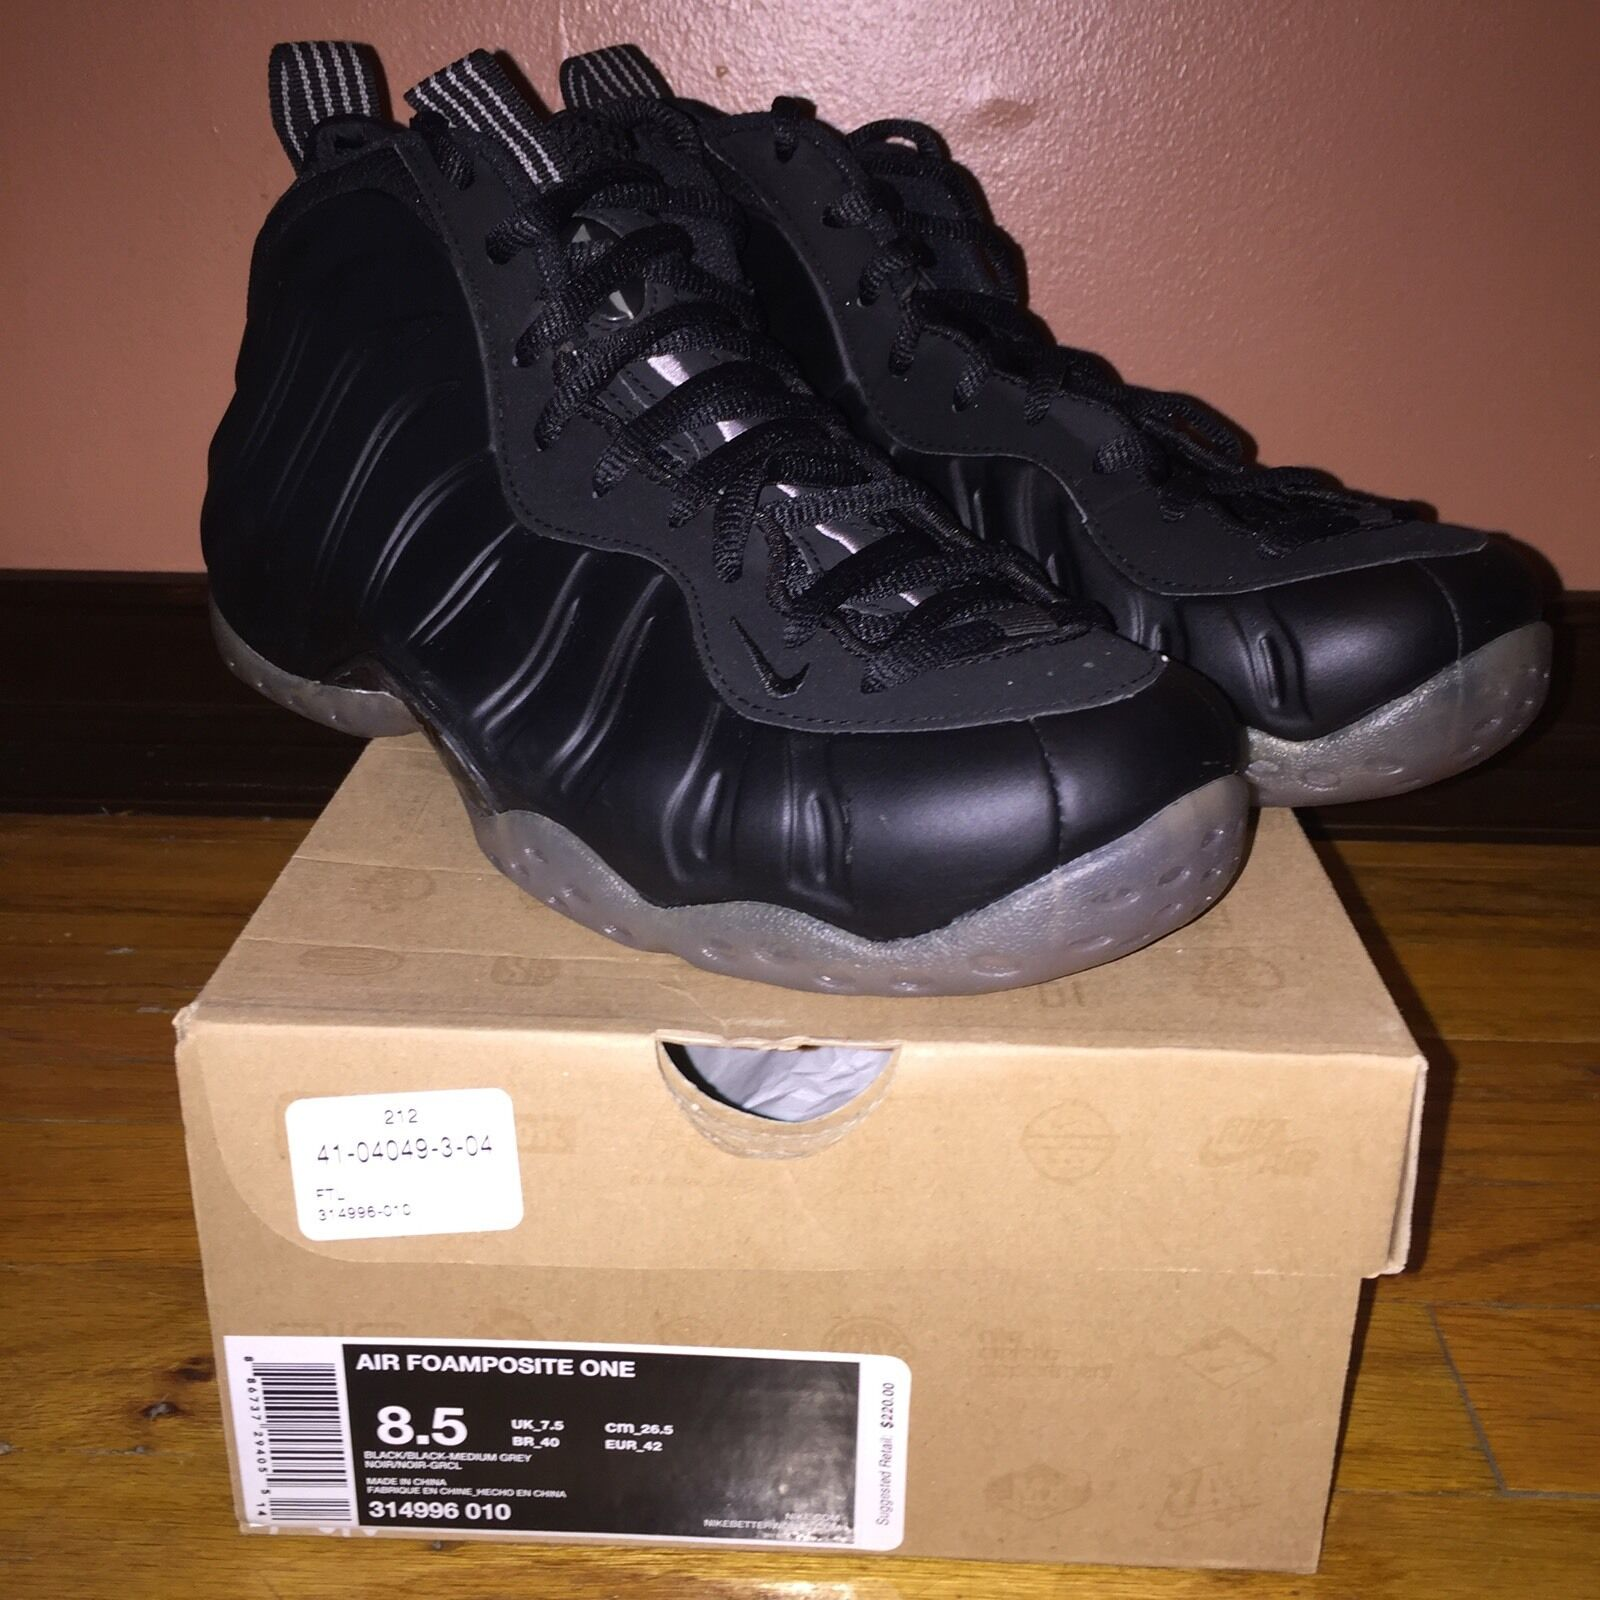 Nike Stealth Air Foamposite One Black/Black-Medium Grey Stealth Nike 314996 010 Sz 8.5 a07d96